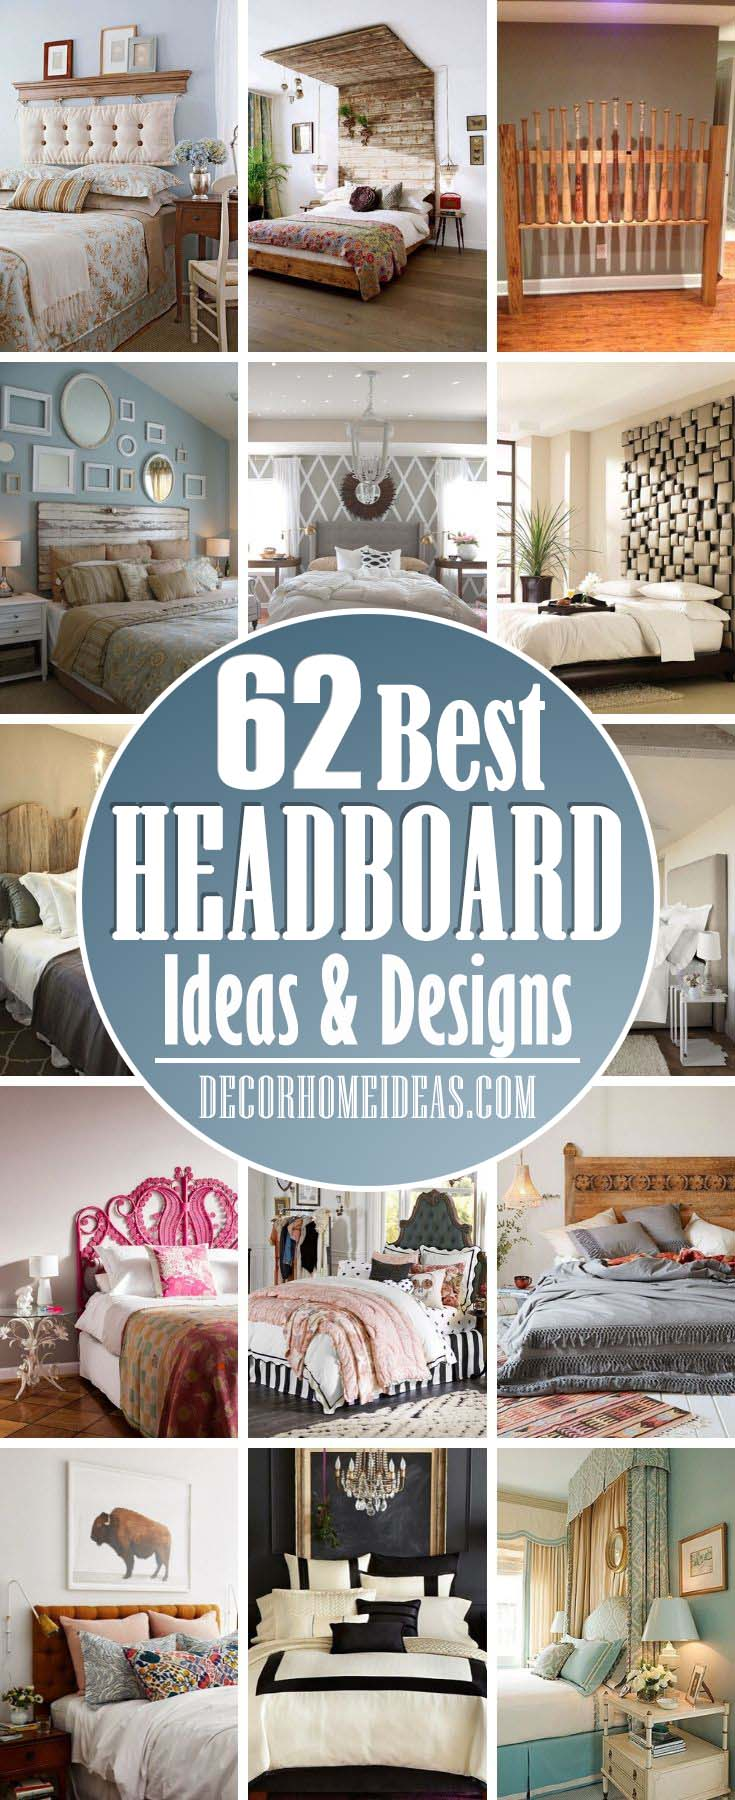 62 Amazing And Cool Headboard Ideas Decor Home Ideas